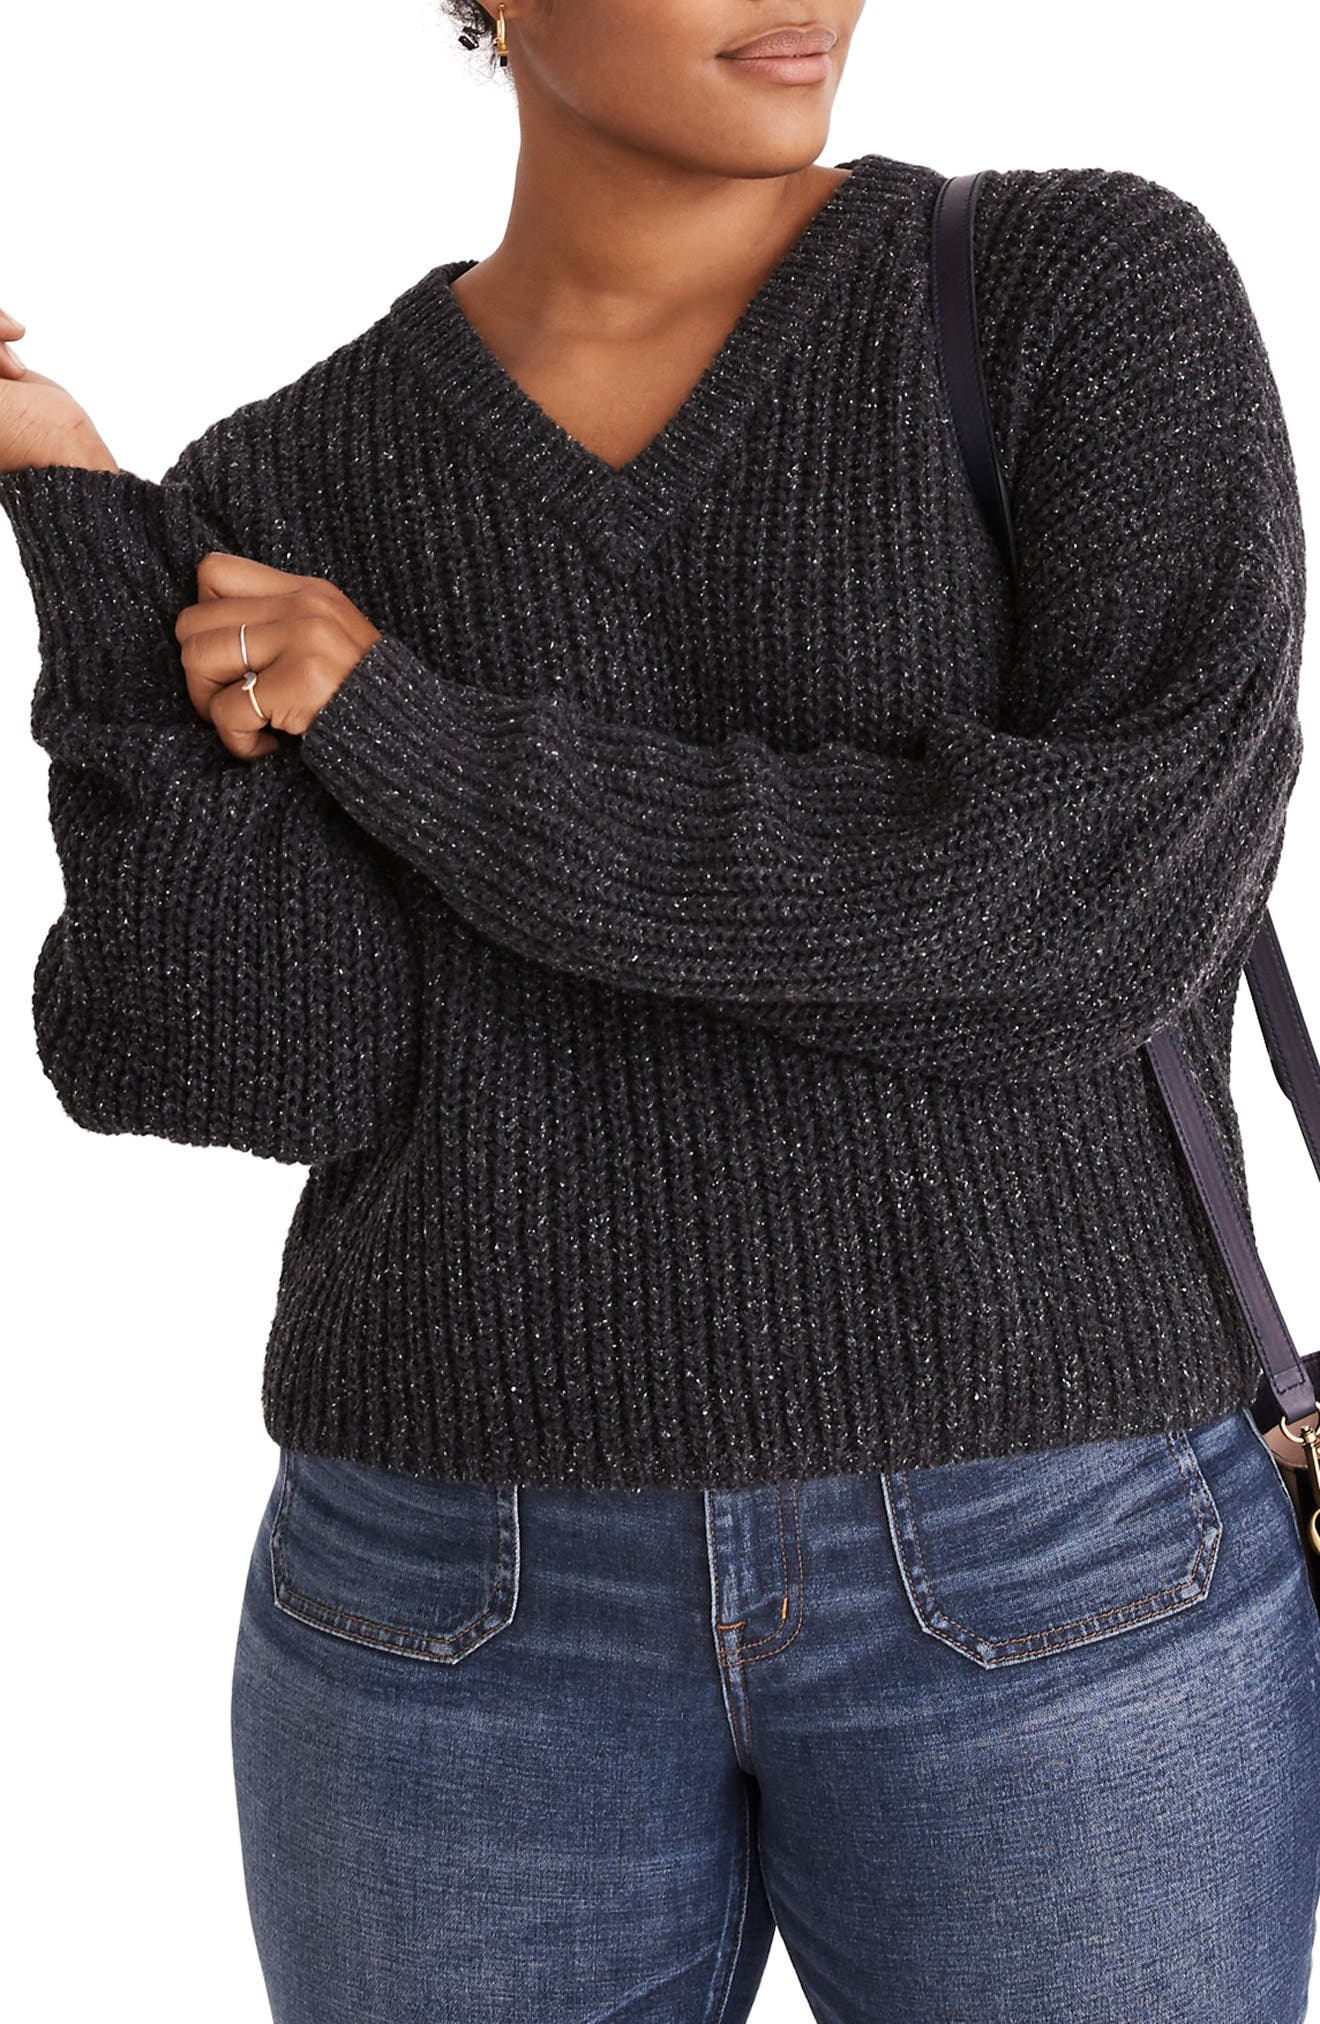 Pleat Sleeve Pullover Sweater,                             Alternate thumbnail 2, color,                             021